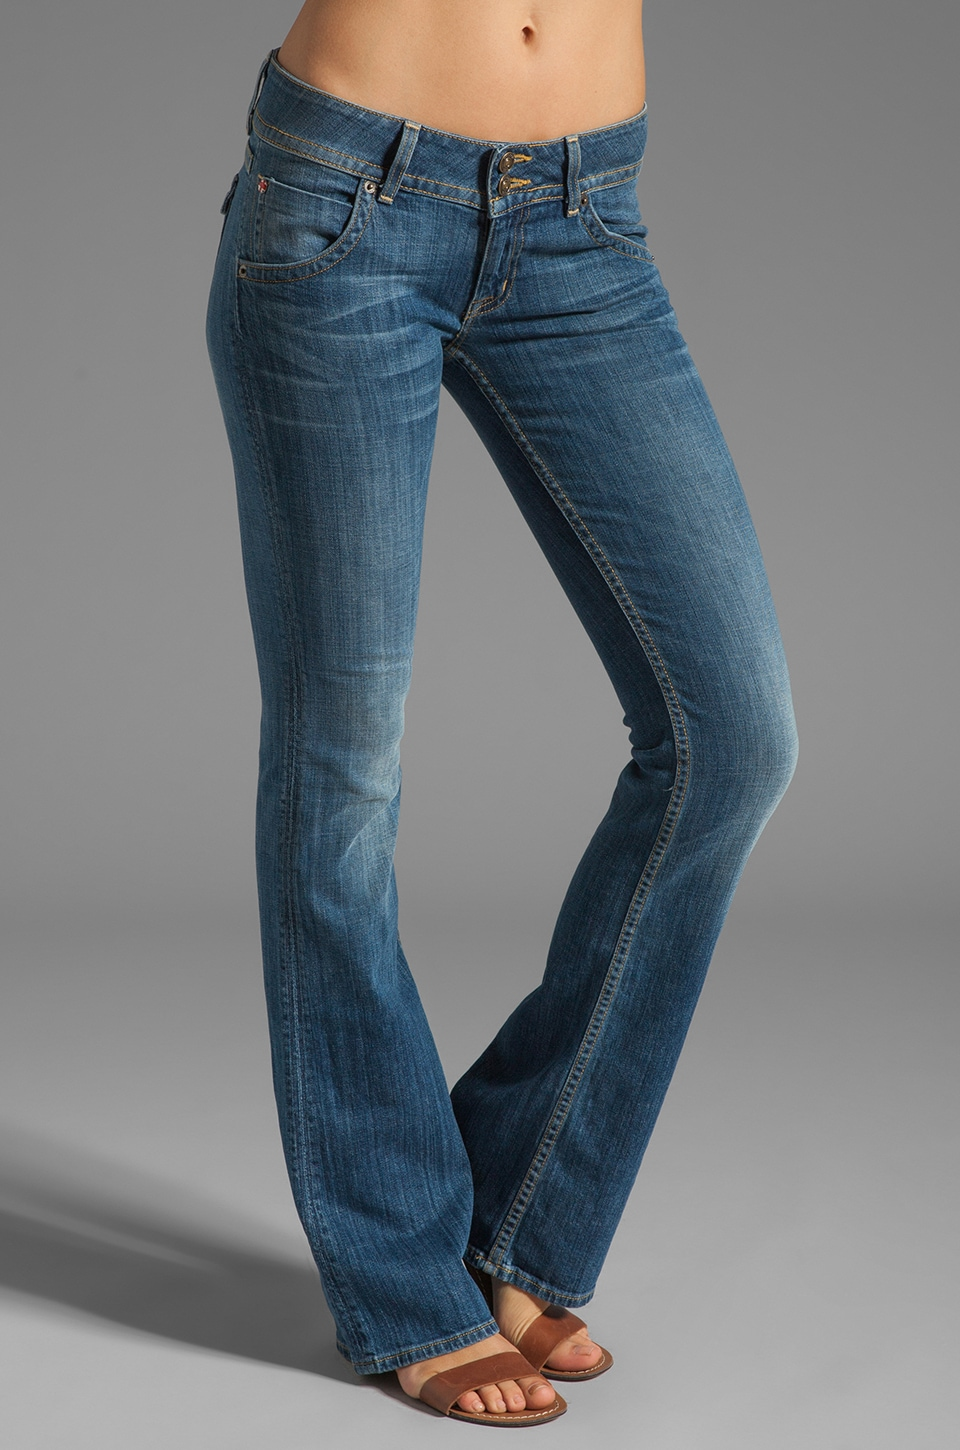 Hudson Jeans Signature Bootcut in Milo